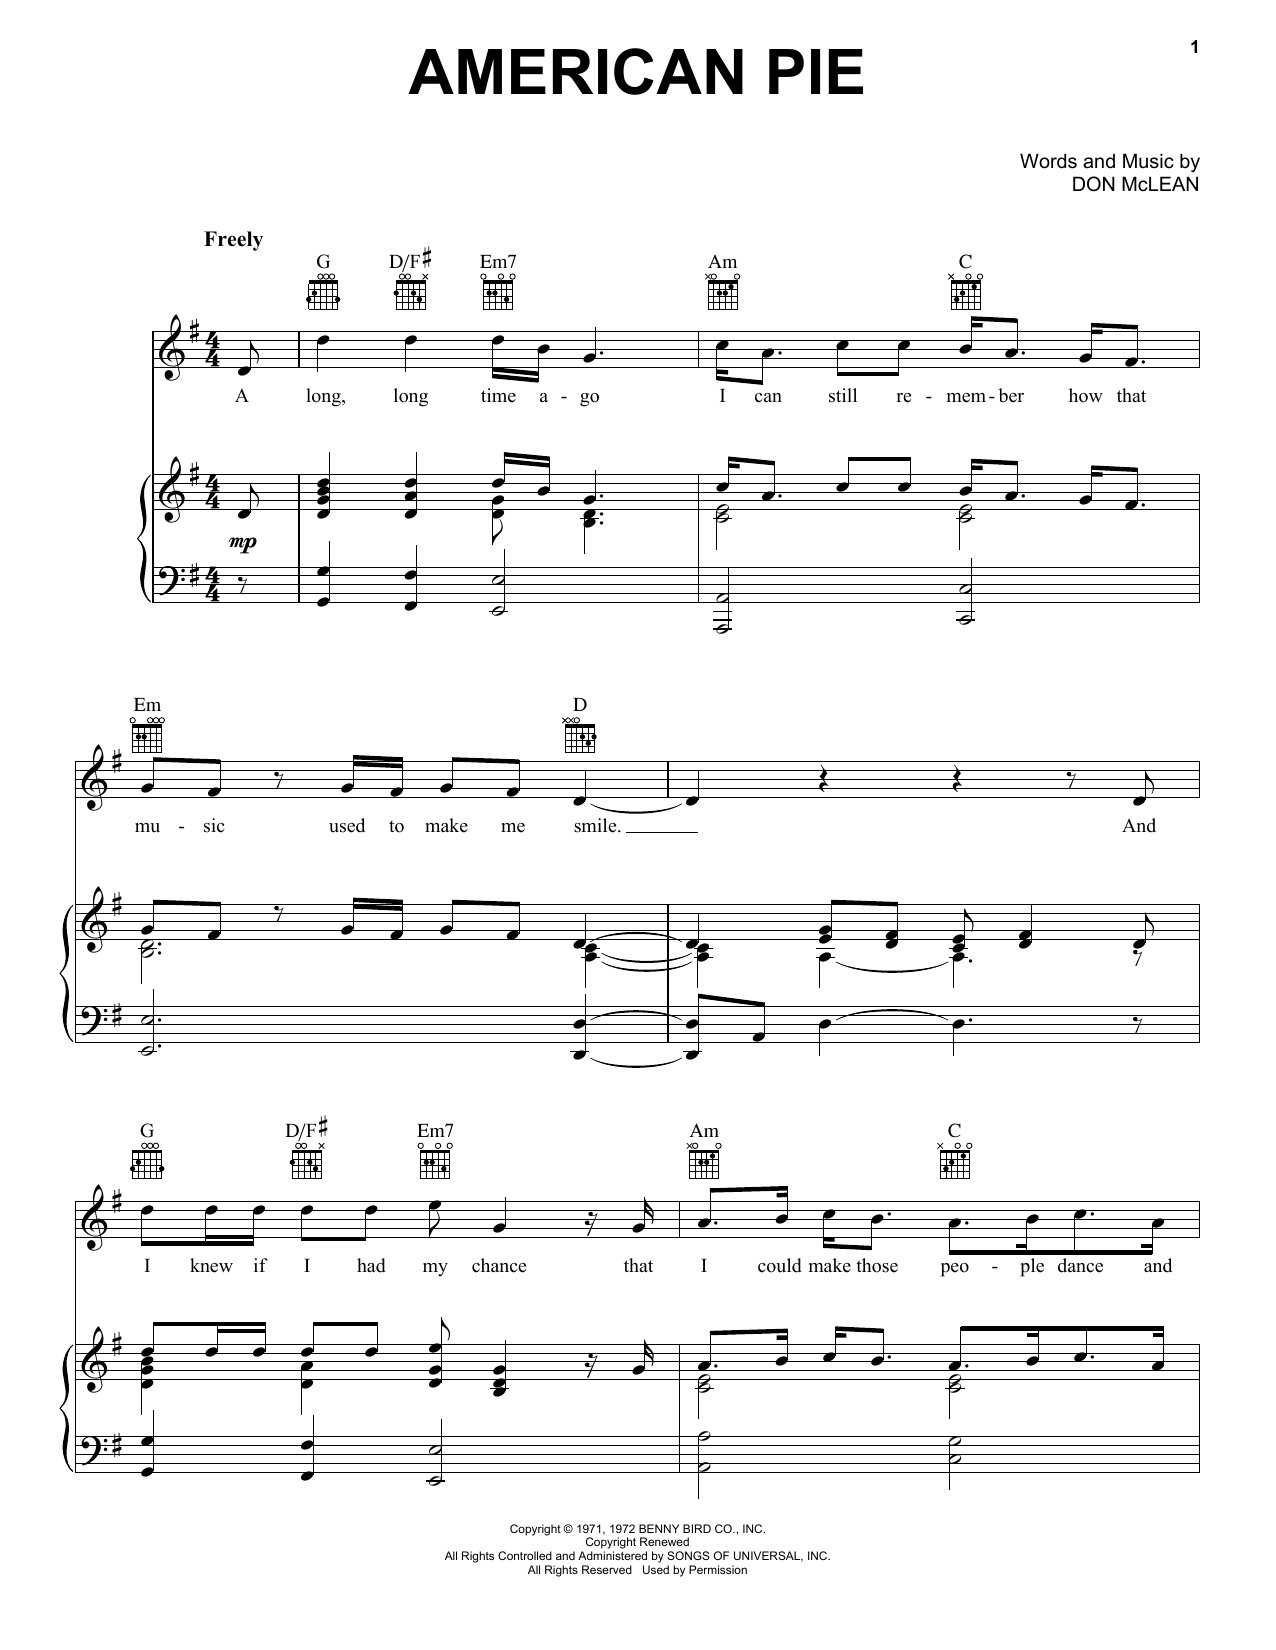 Sheet music digital files to print licensed don mclean digital sheet music digital files to print licensed don mclean digital sheet music hexwebz Gallery